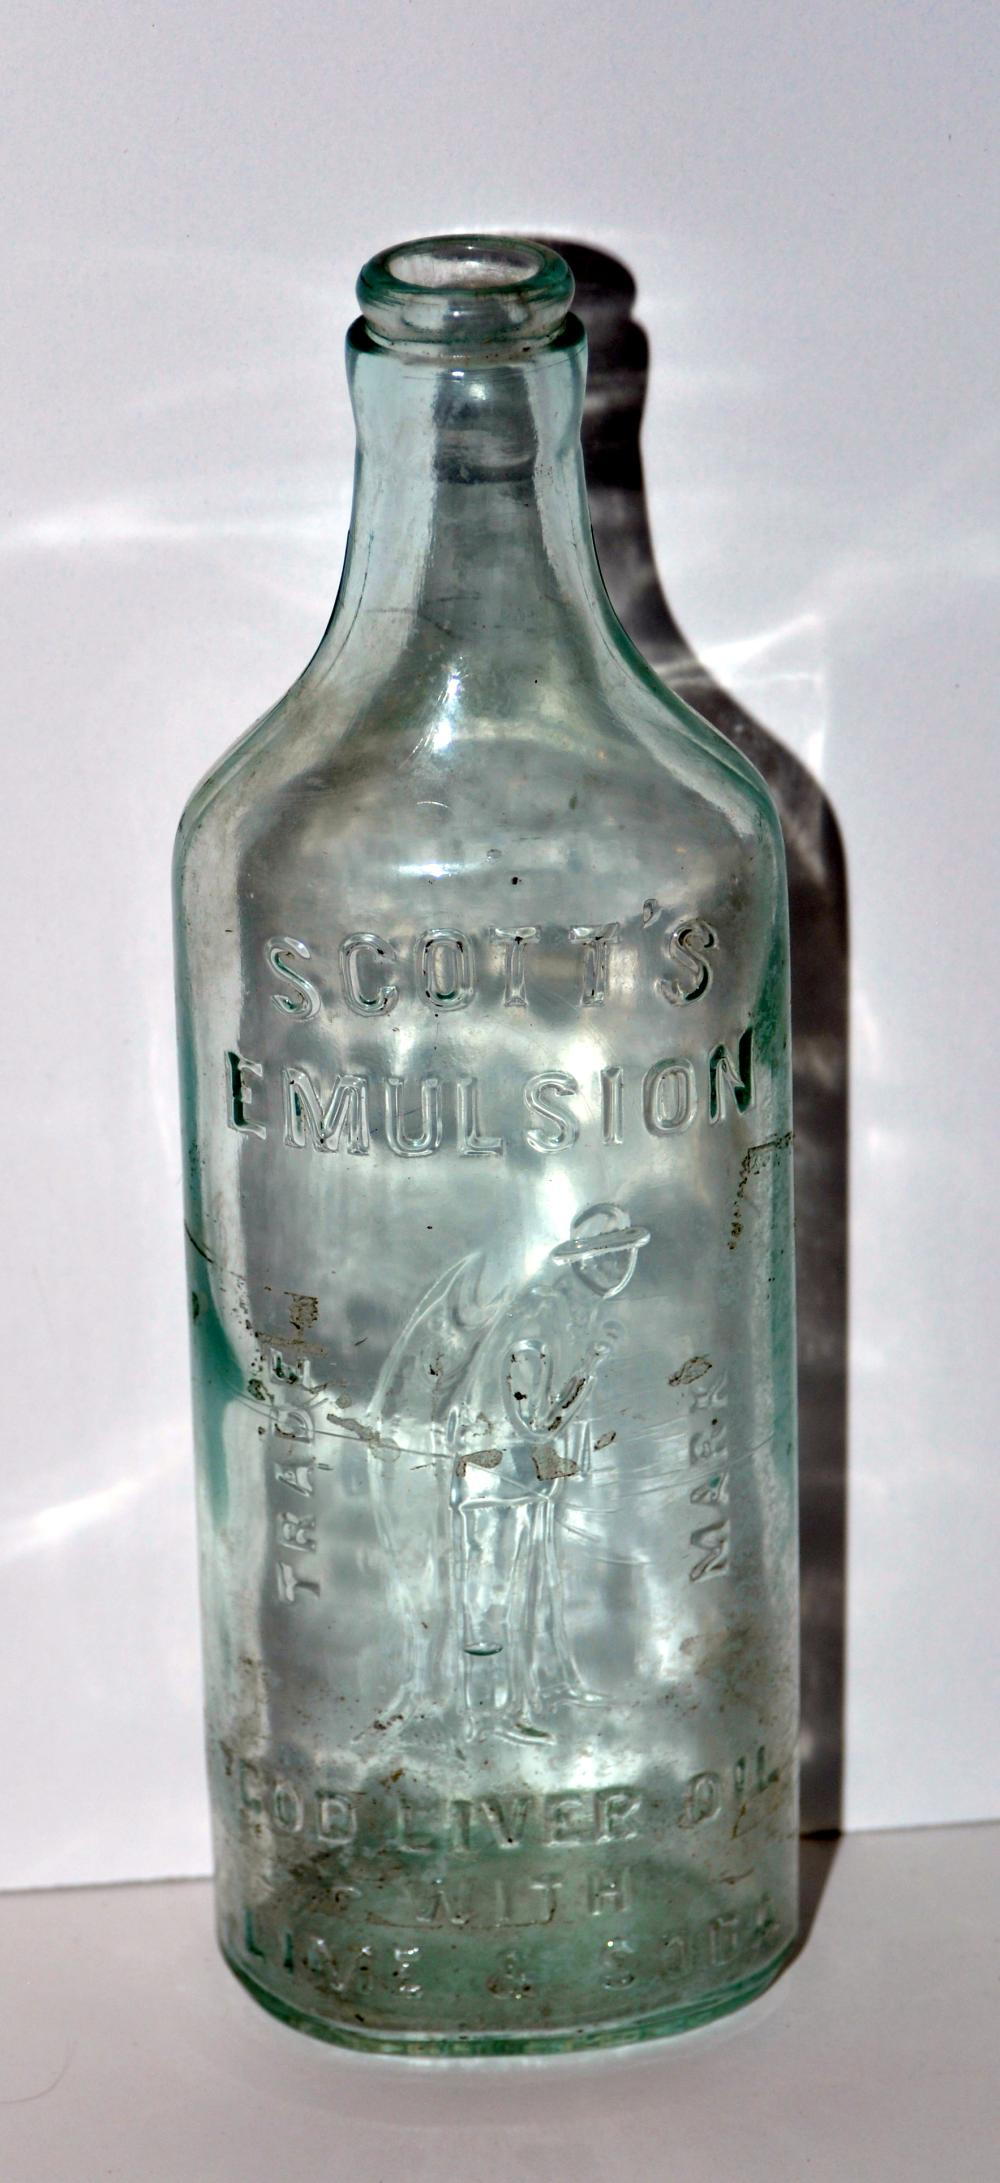 Scotts vintage emulsion bottle - cod liver oil